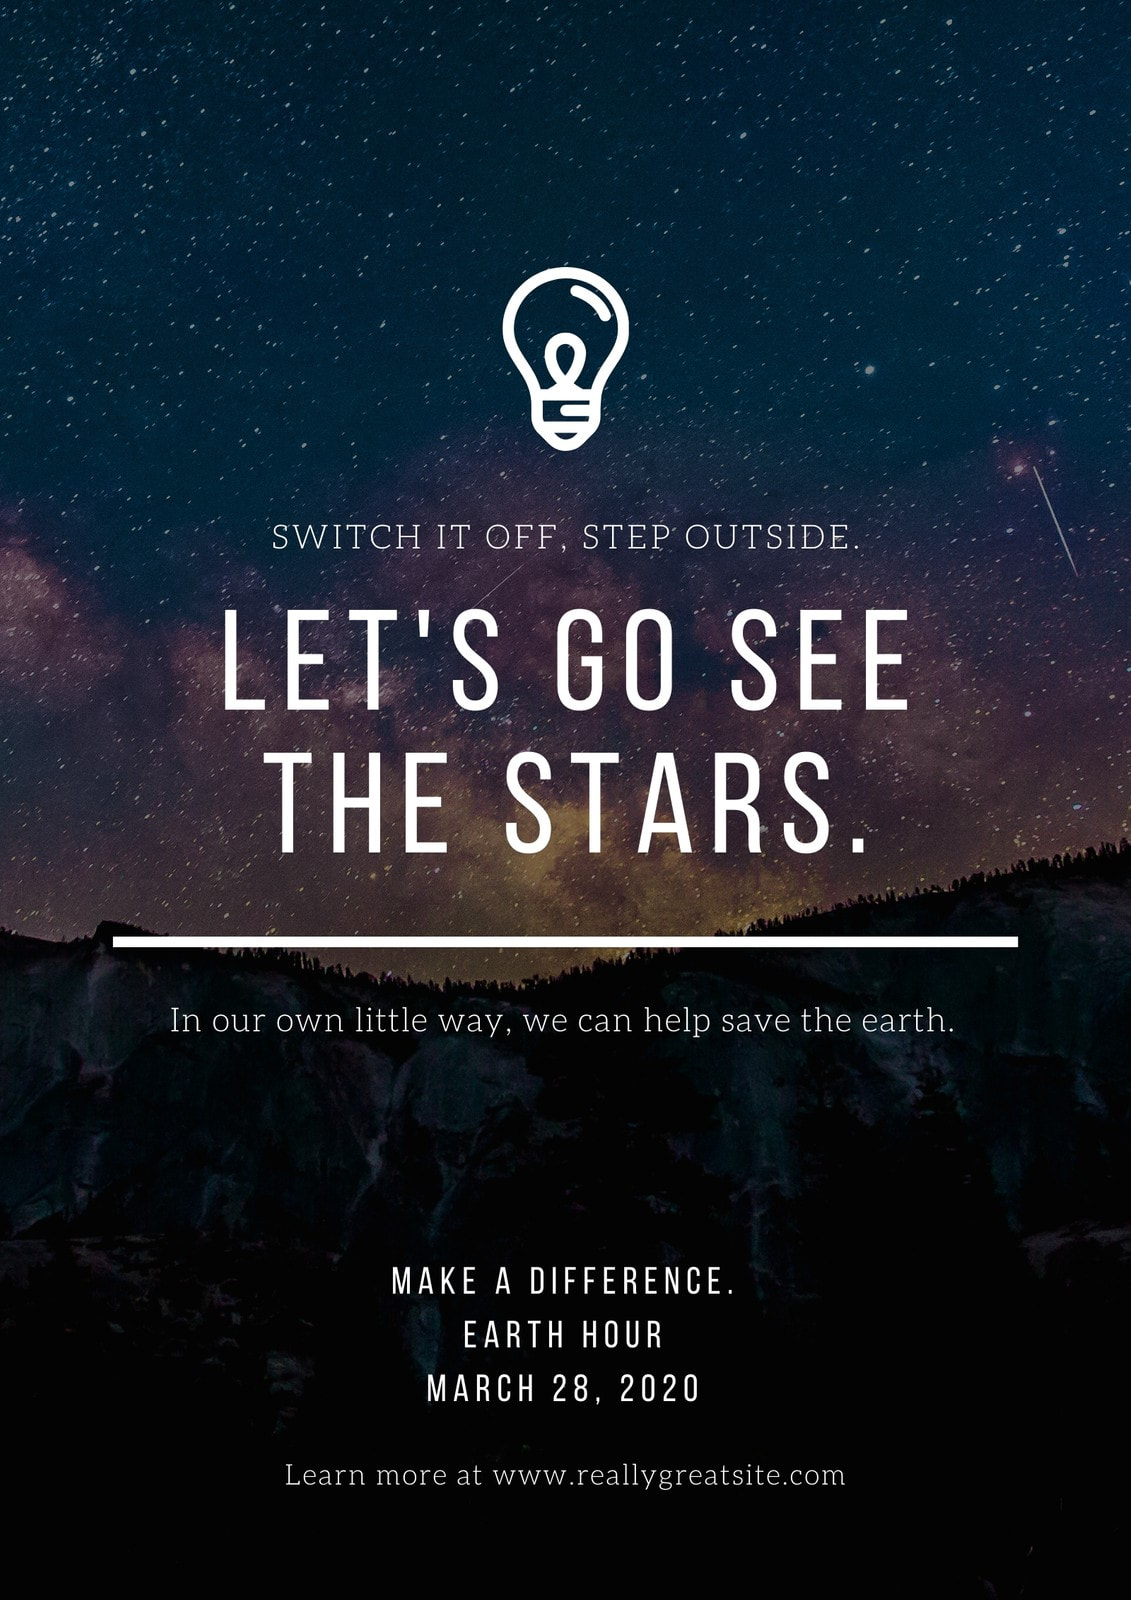 Galaxy Background Simple Light Pollution Environmental Awareness Campaign Poster